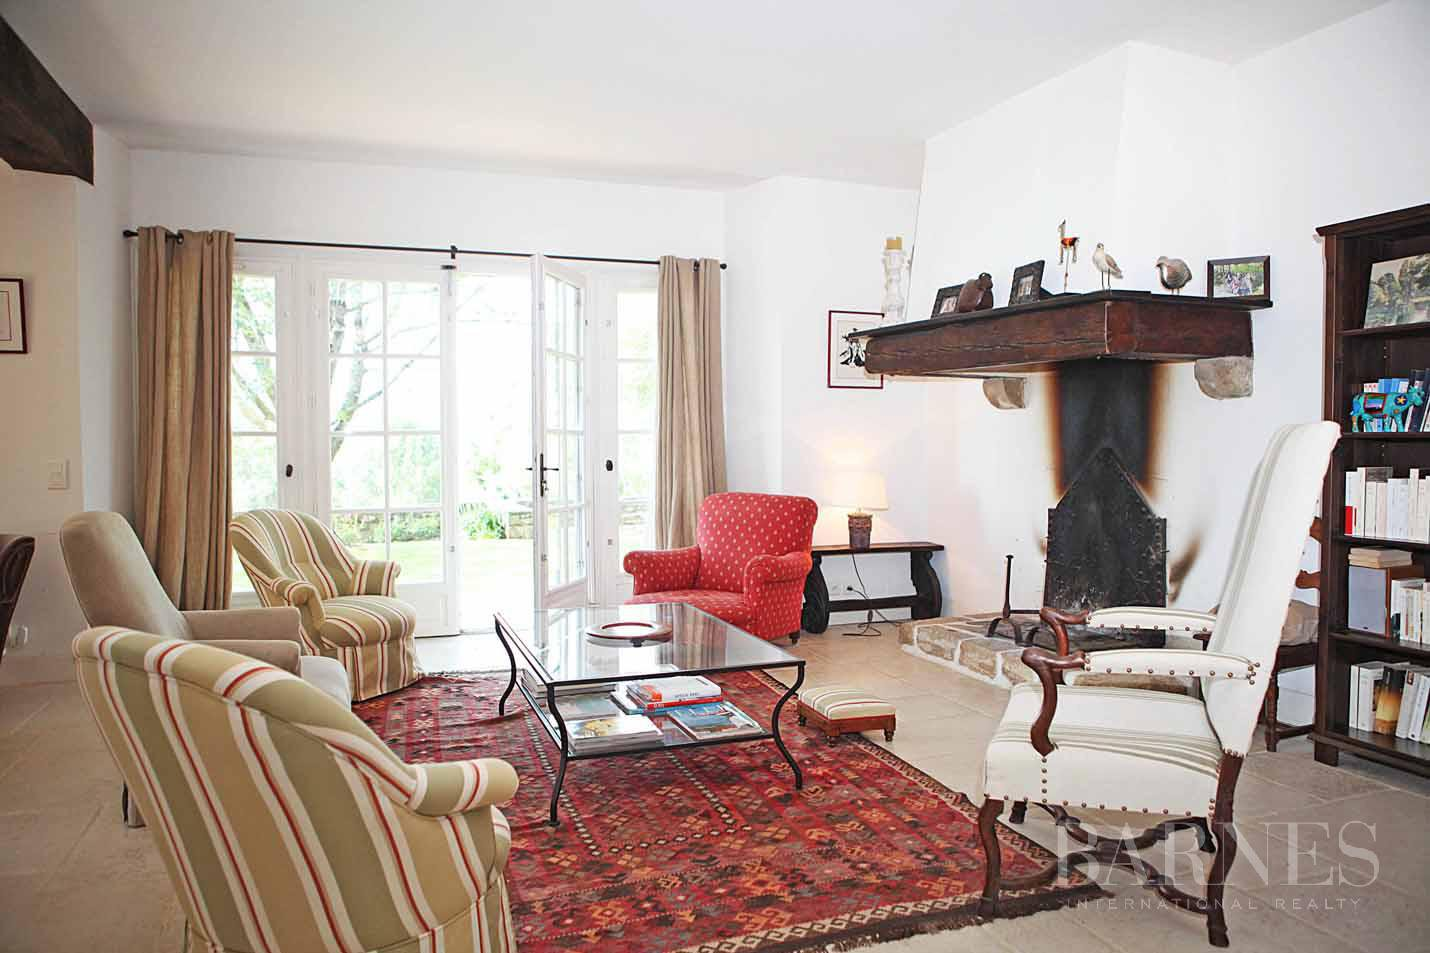 SARE, 20 MINUTES FROM SAINT JEAN DE LUZ, BASQUE STYLE FARMHOUSE WITH HEATED POOL, PANORAMIC MOUNTAIN VIEW picture 10